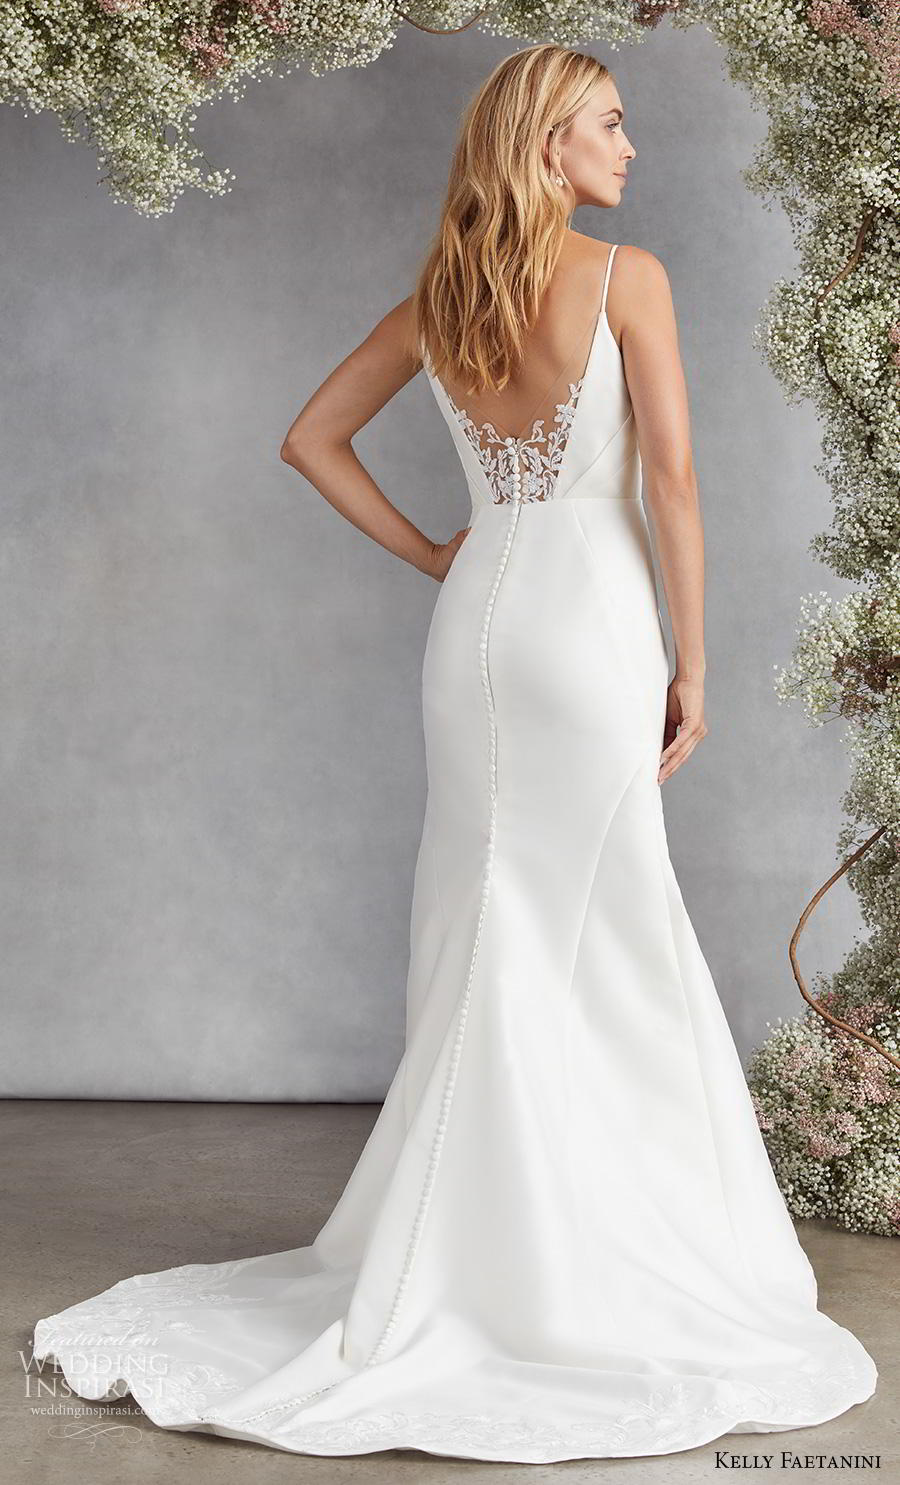 kelly faetanini fall 2020 bridal sleeveless spaghetti strap v neck ruched bodice simple classic fit and flare wedding dress backless medium train (15) bv